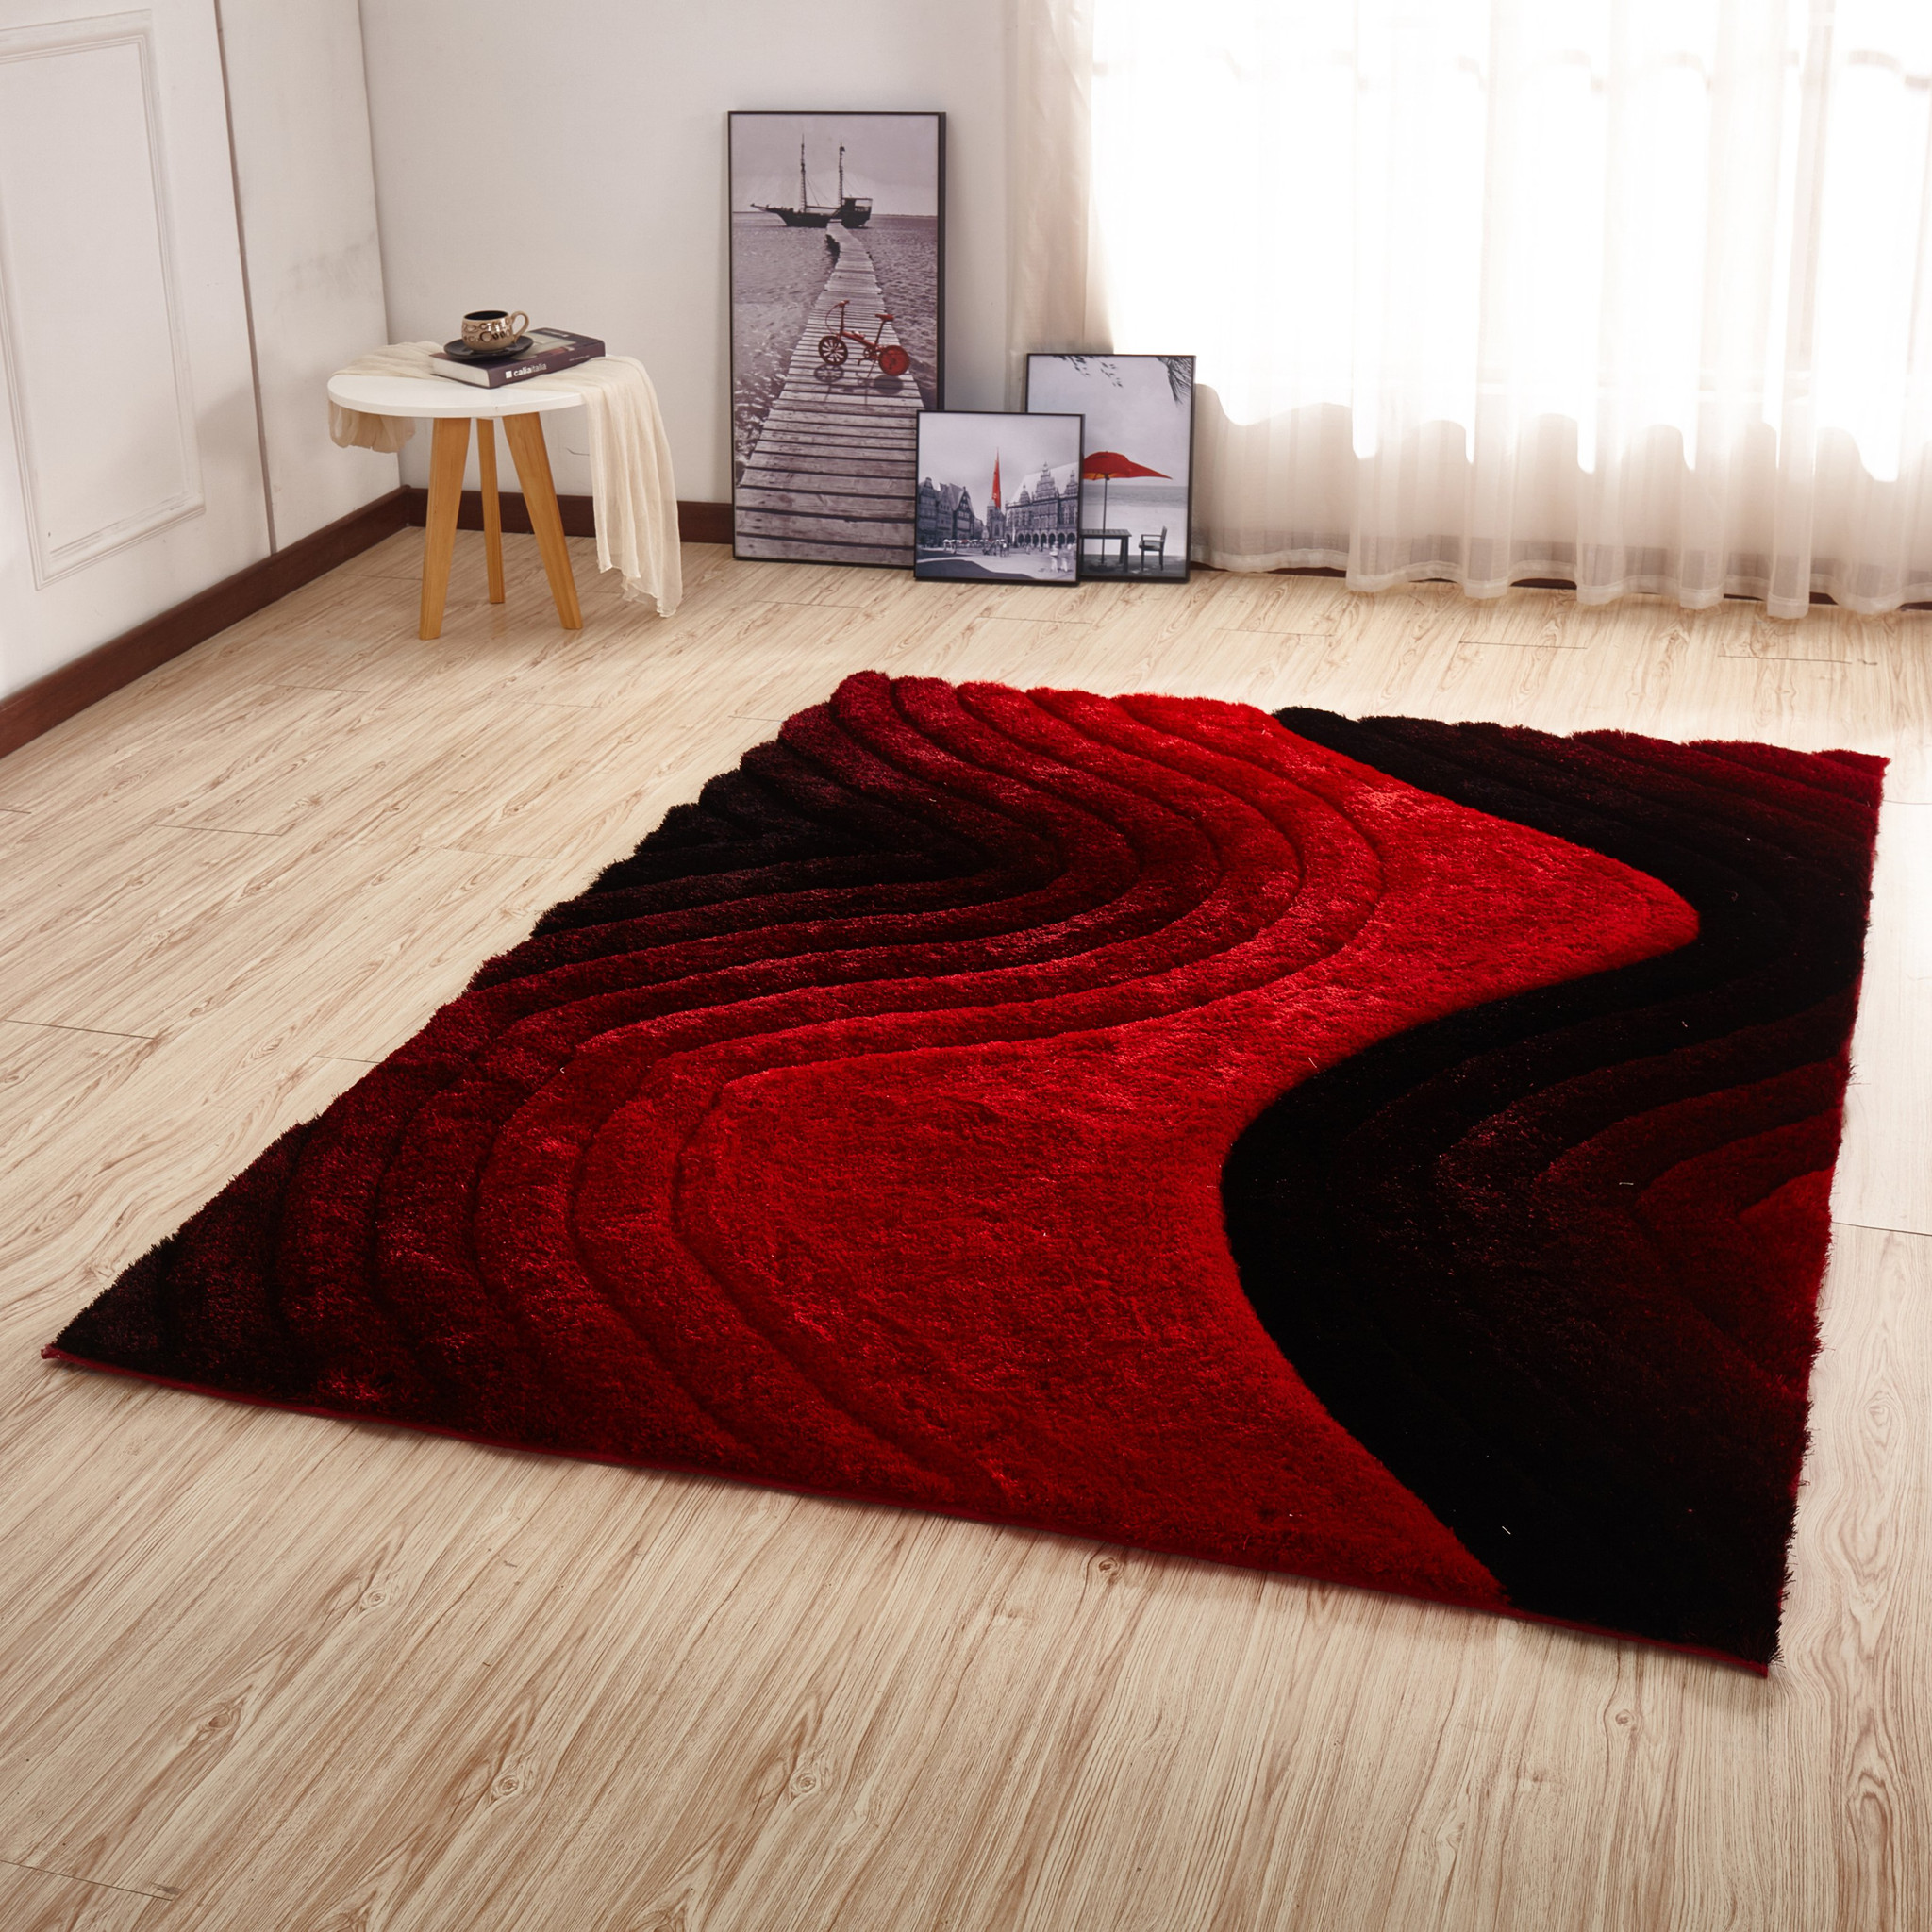 Csr2113 5x7 Crown Shag 3d Red Black Area Rug By Km Rugs